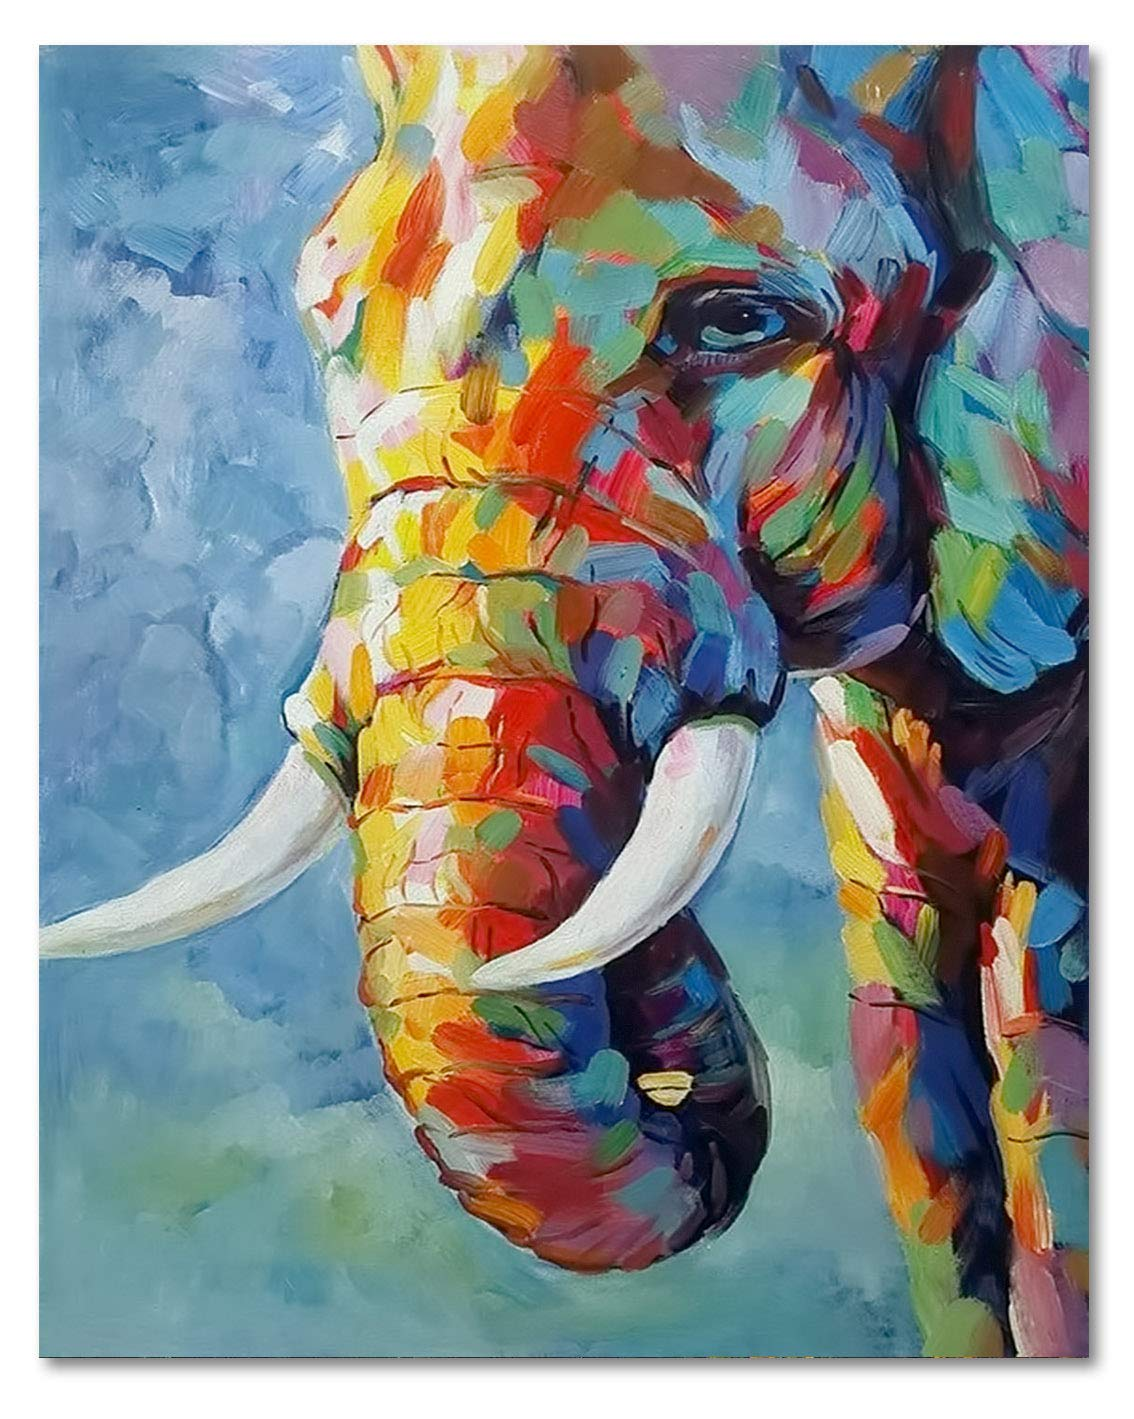 Lb Elephant Canvas Wall Art Watercolor Animal Indian Elephant Painting Canvas Prints Wall For Living Room Bedroom Bathroom Home Decor Framed Ready To Hang 16x20 Inches Amazon In Home Kitchen